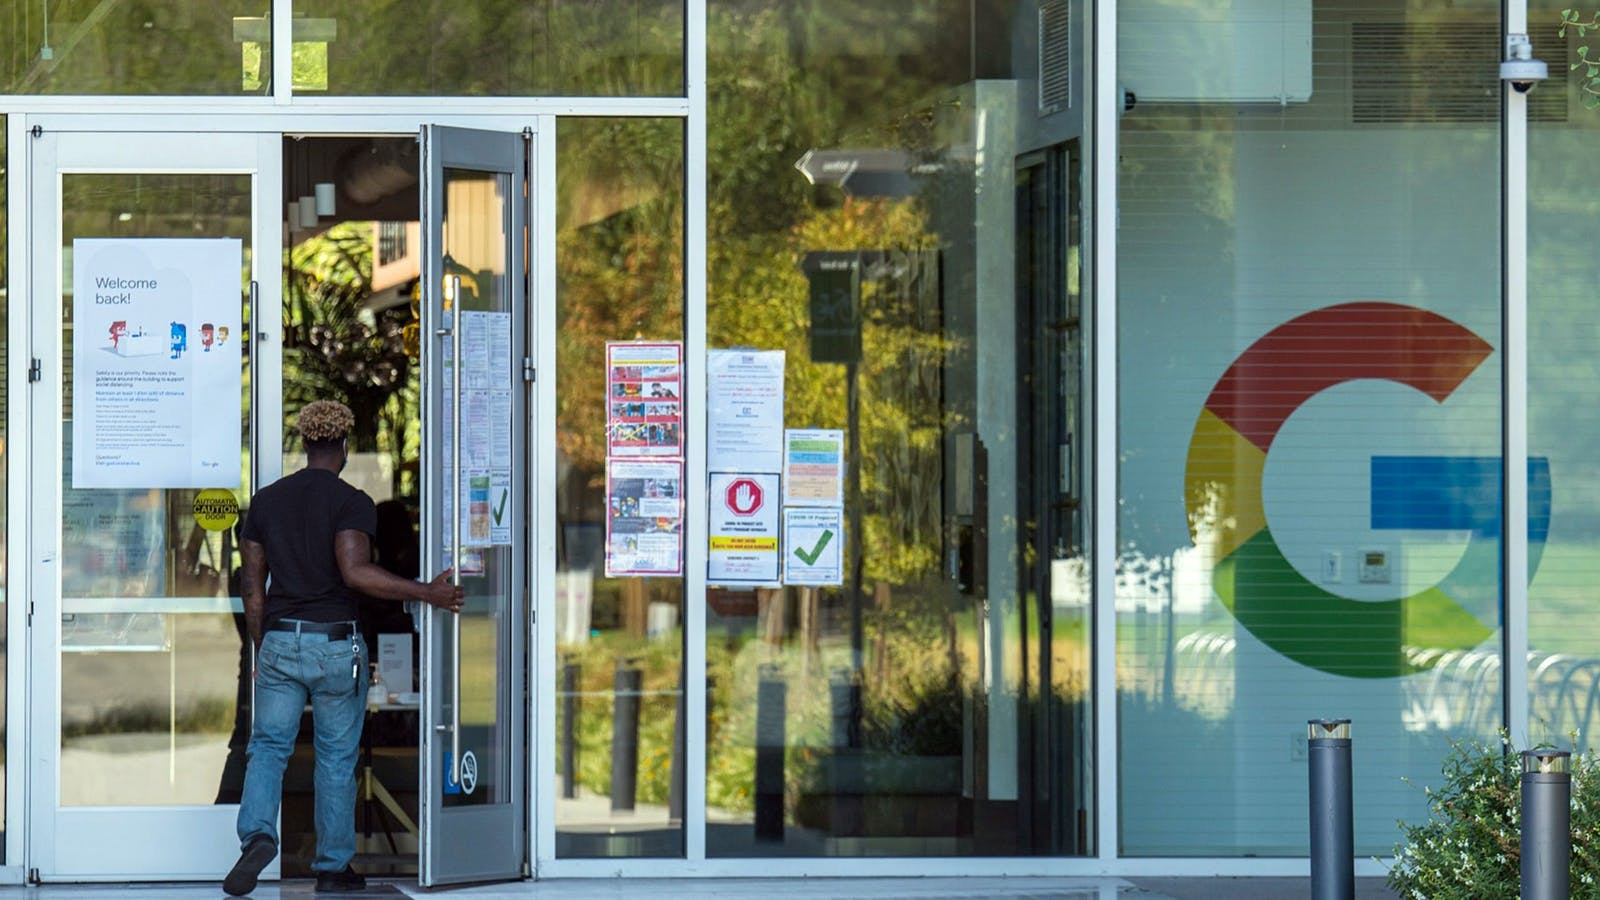 A person walks into a building at the Google campus in Mountain View, California, on Monday, July 27, 2020. Photo by Bloomberg